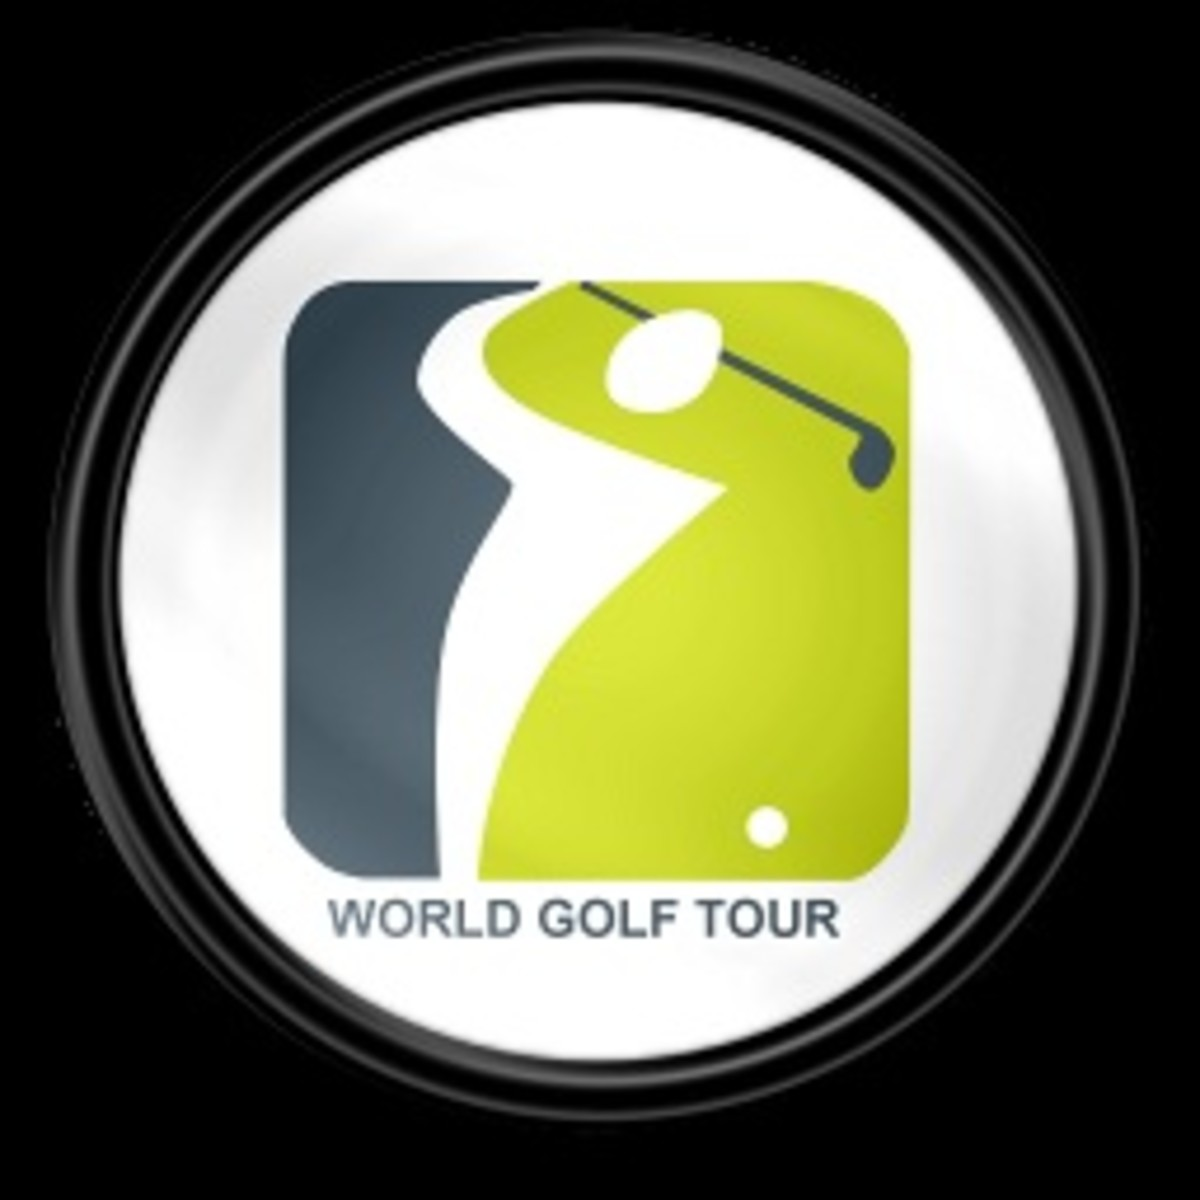 How To Shoot Low Scores On WGT - World Golf Tour Tips | HubPages